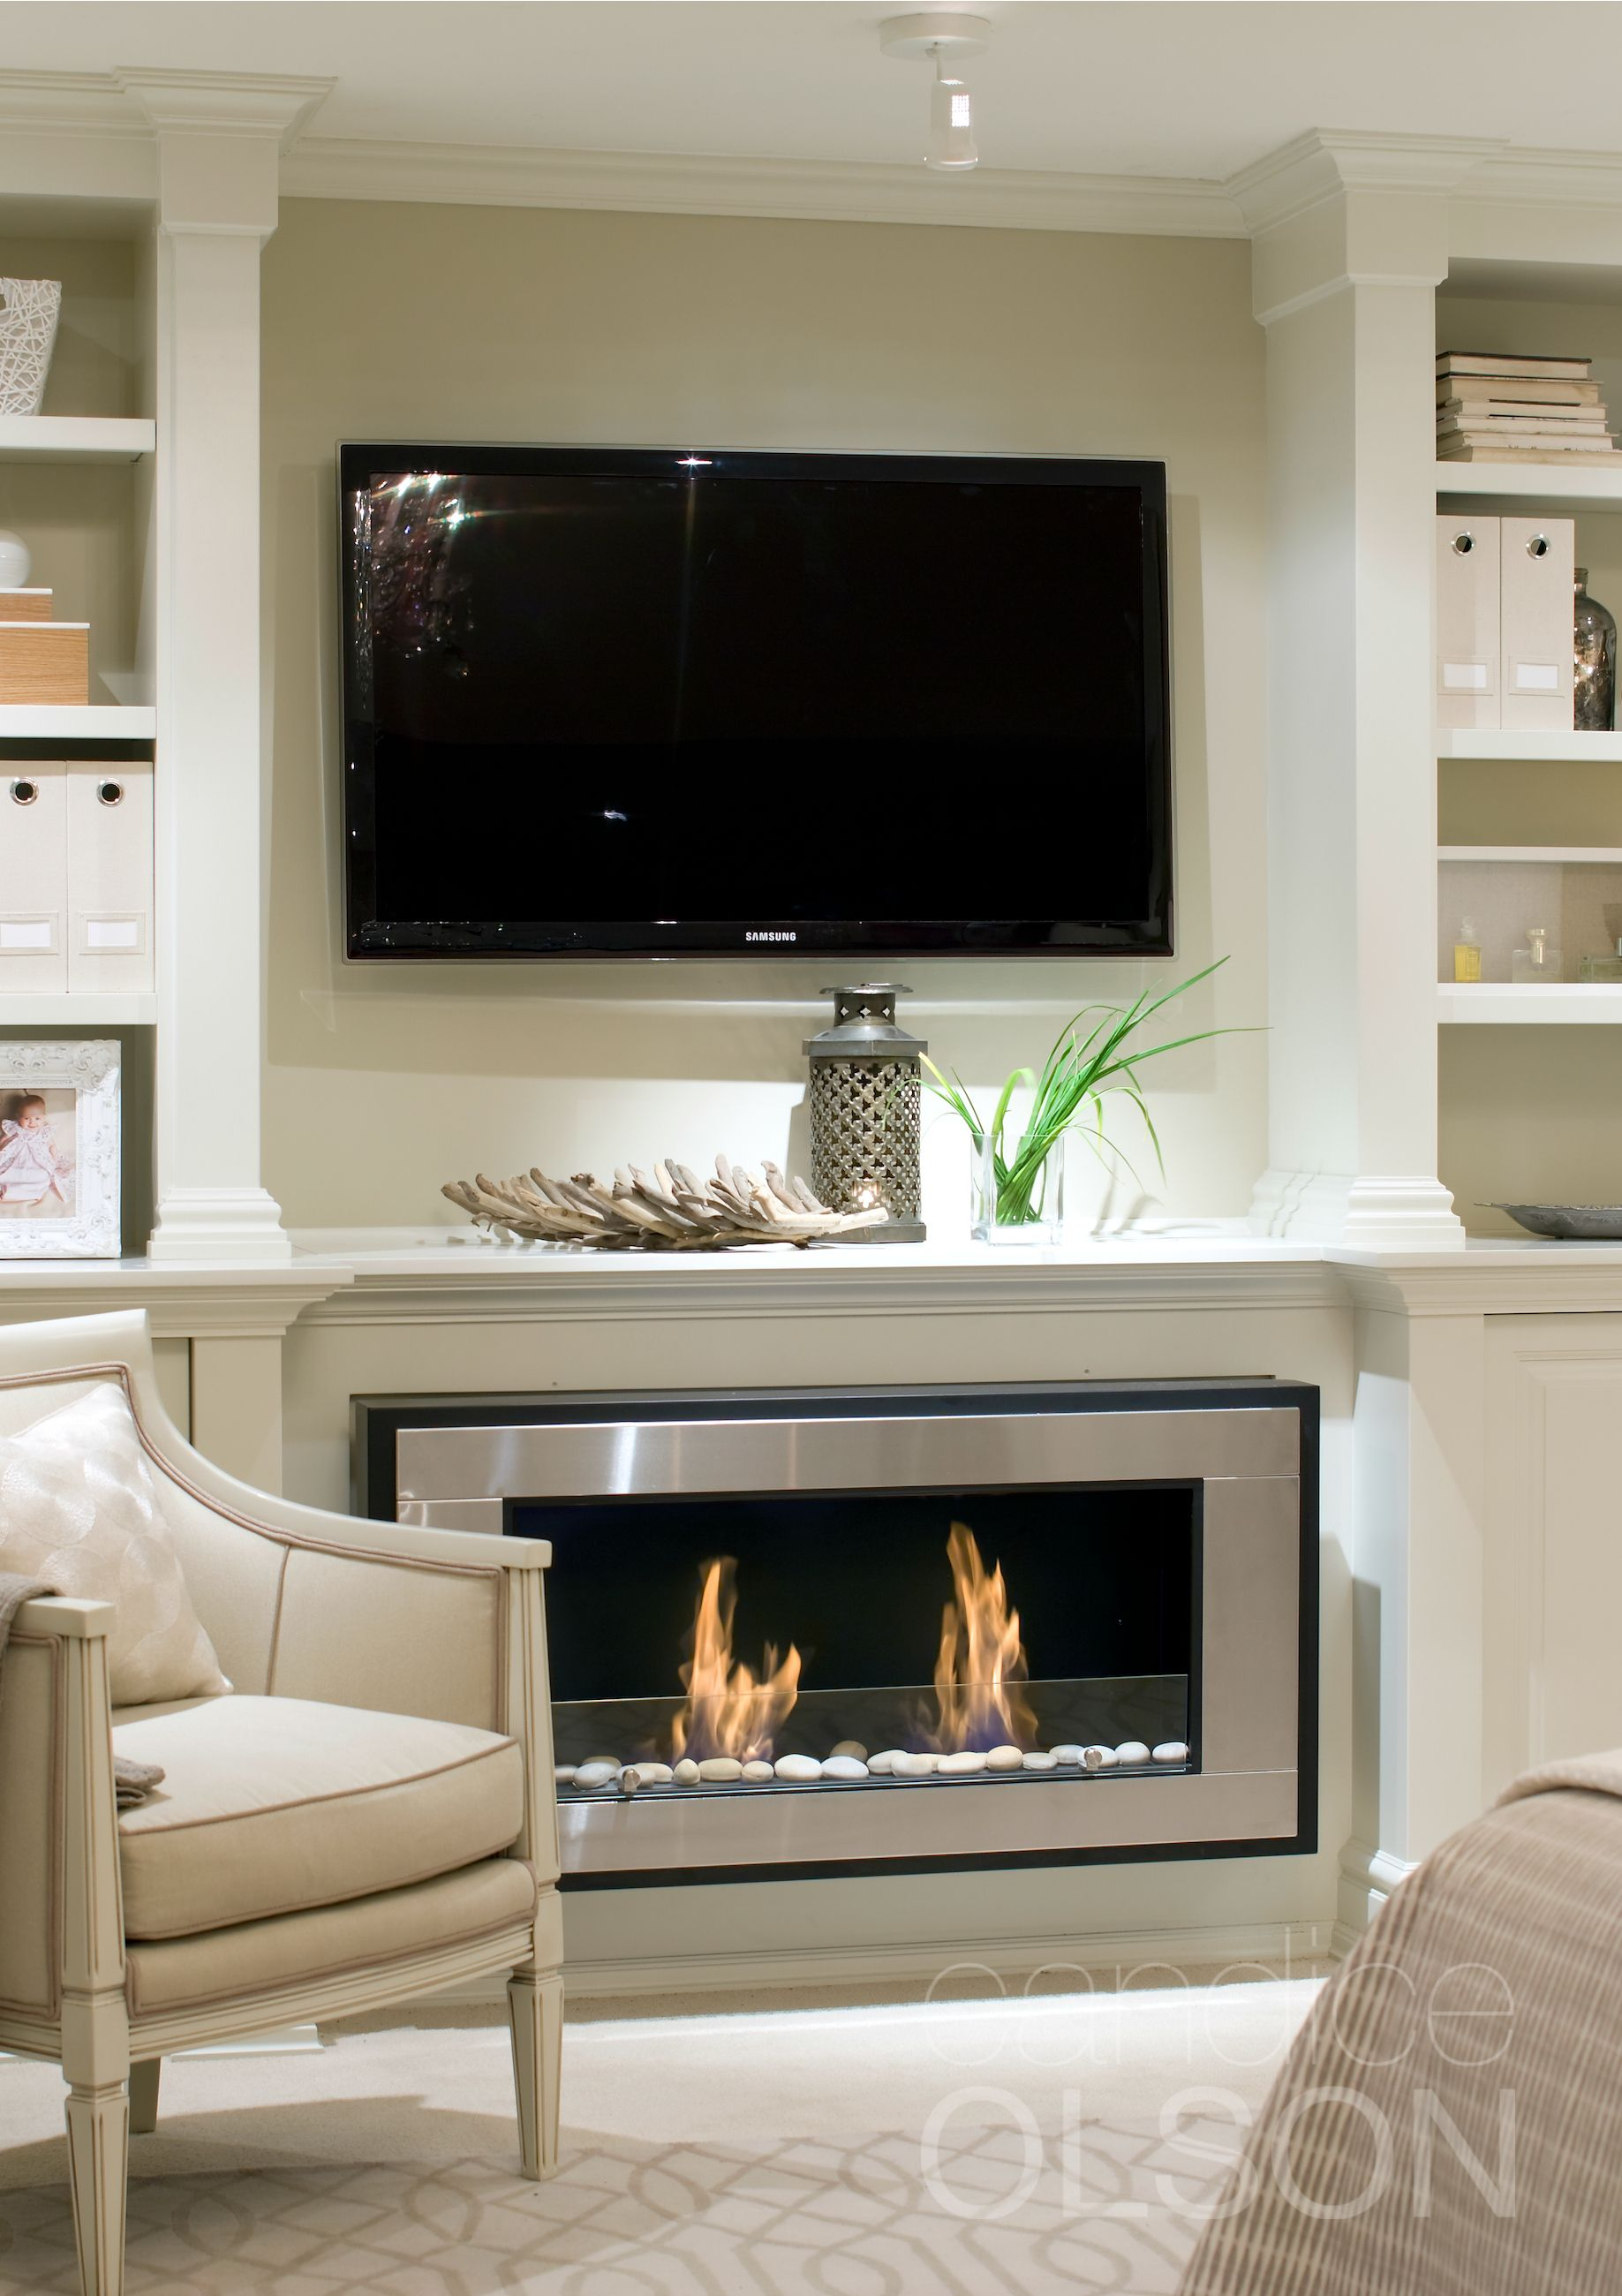 Candice Olson Living Room Furniture: Fireplace Designed By Candice Olson Design Inc